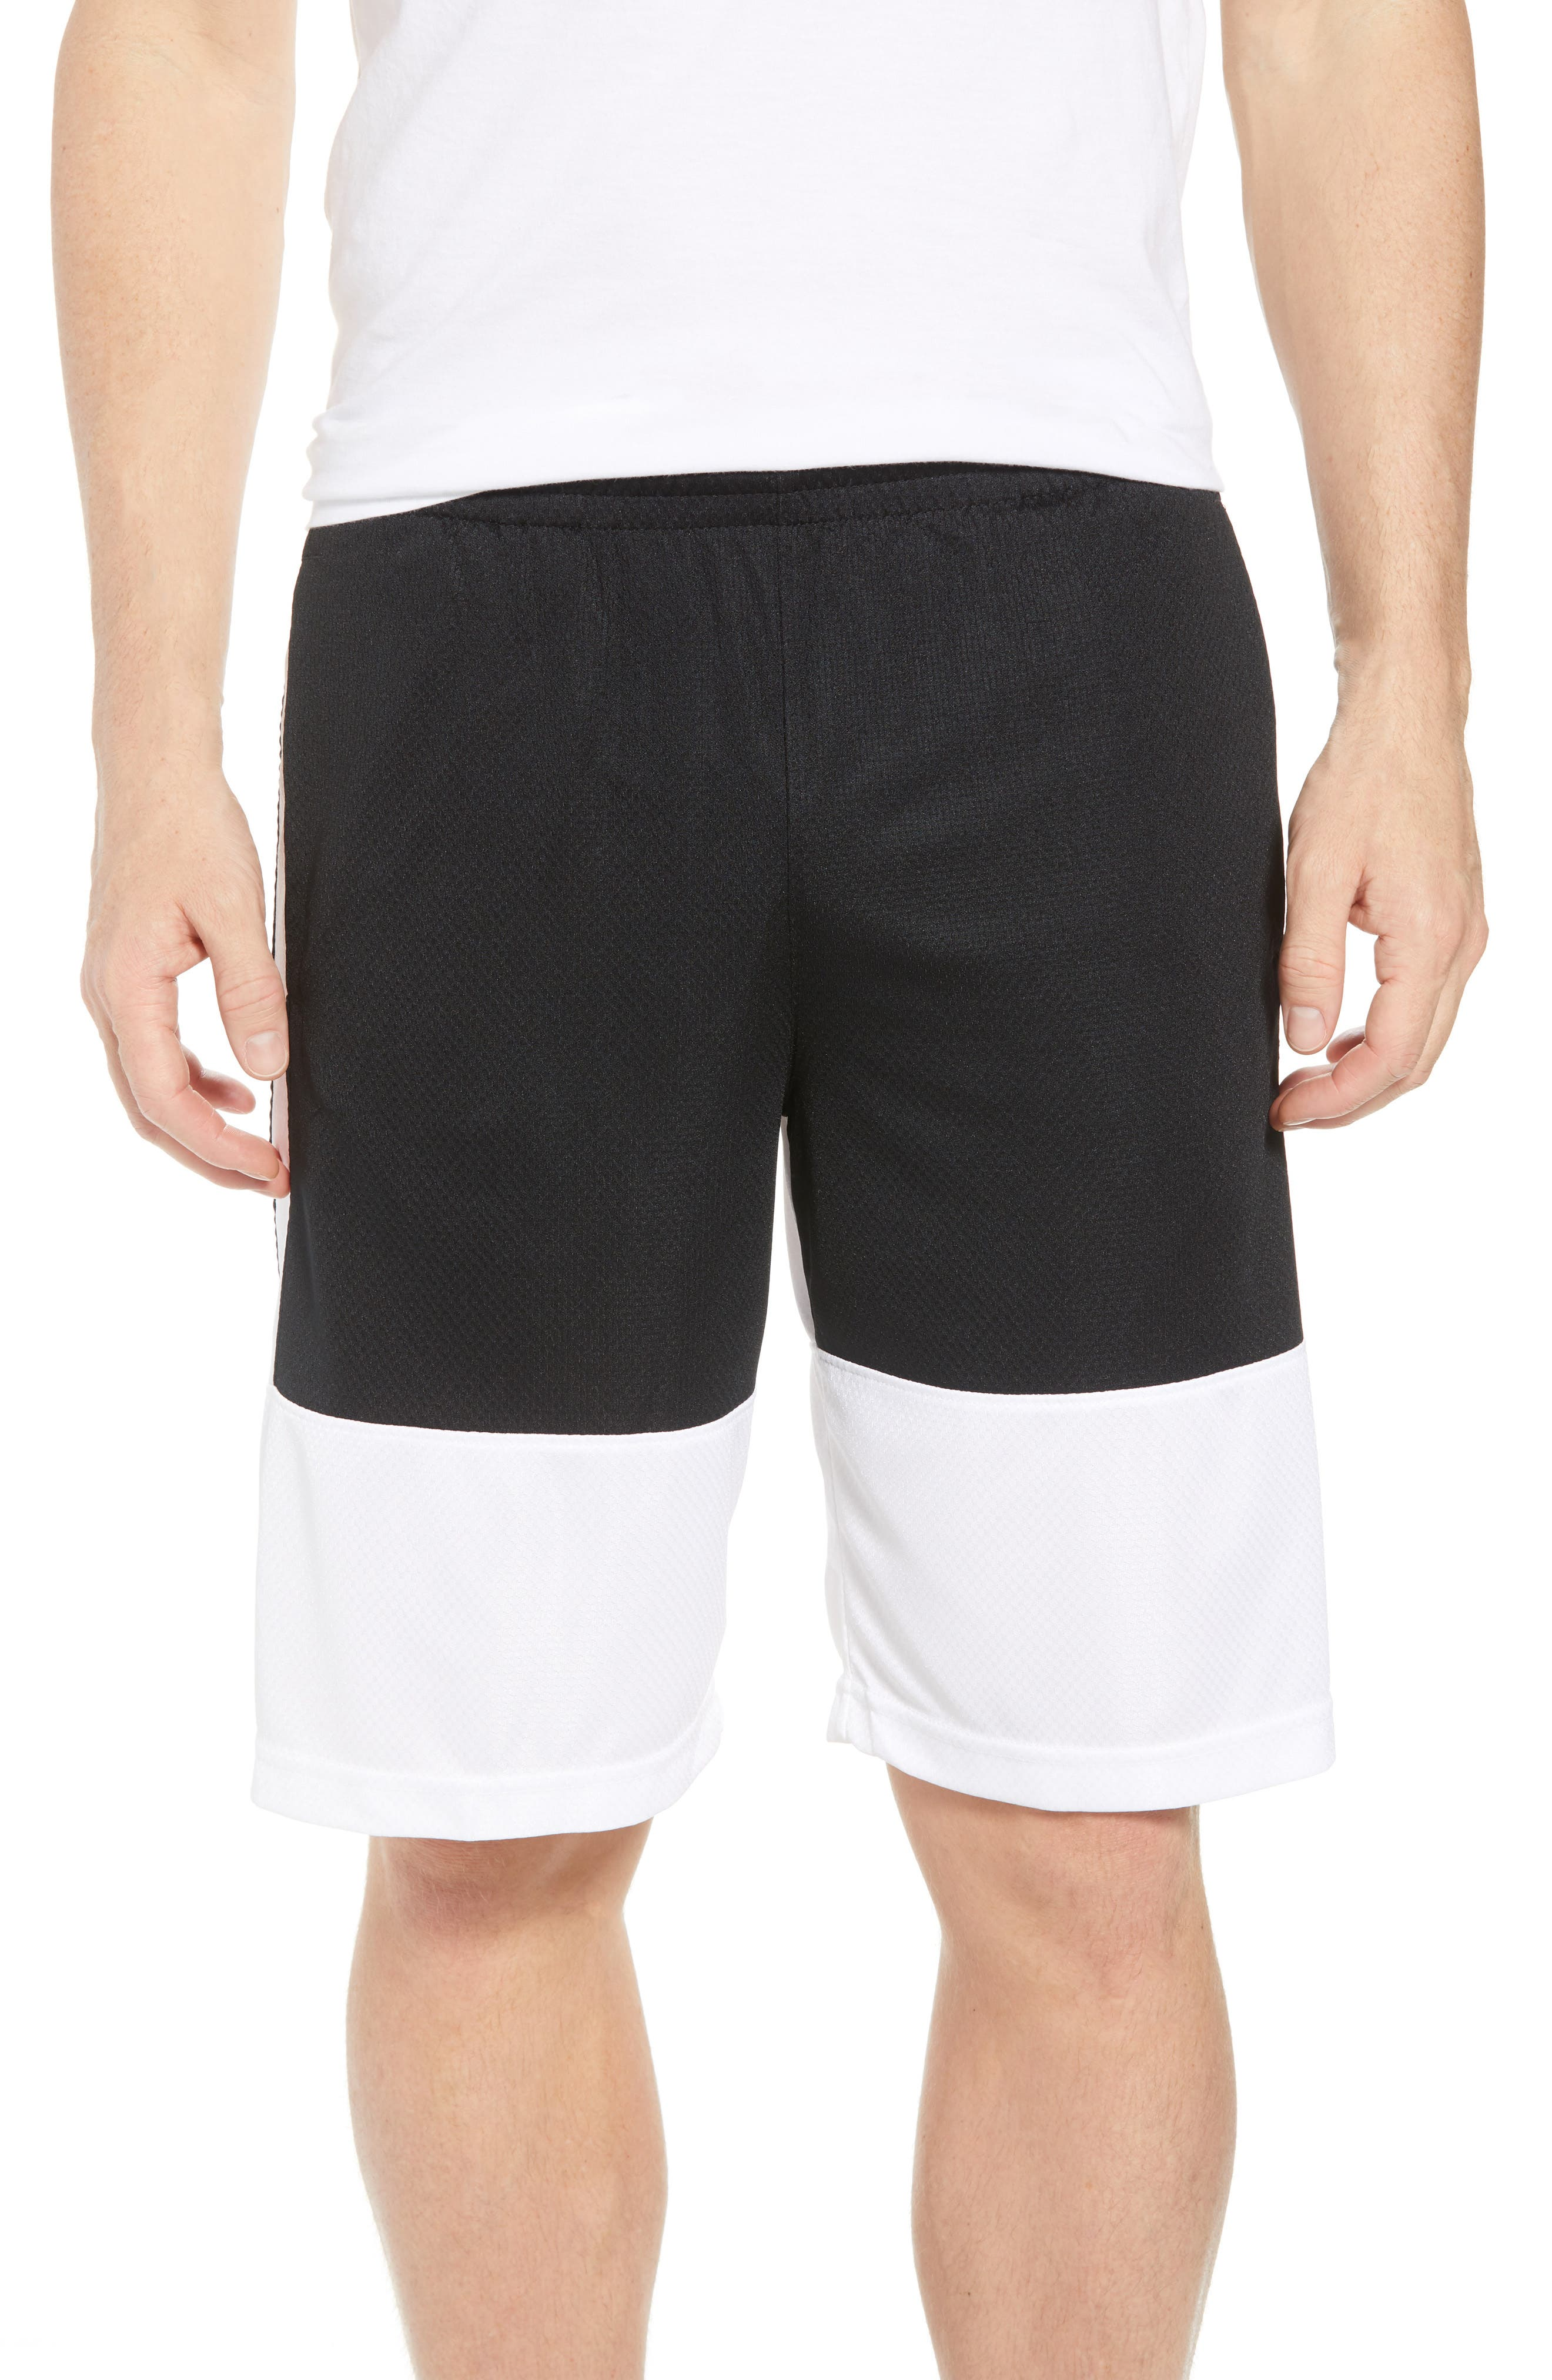 Rise Shorts,                             Main thumbnail 1, color,                             WHITE/ BLACK/ BLACK